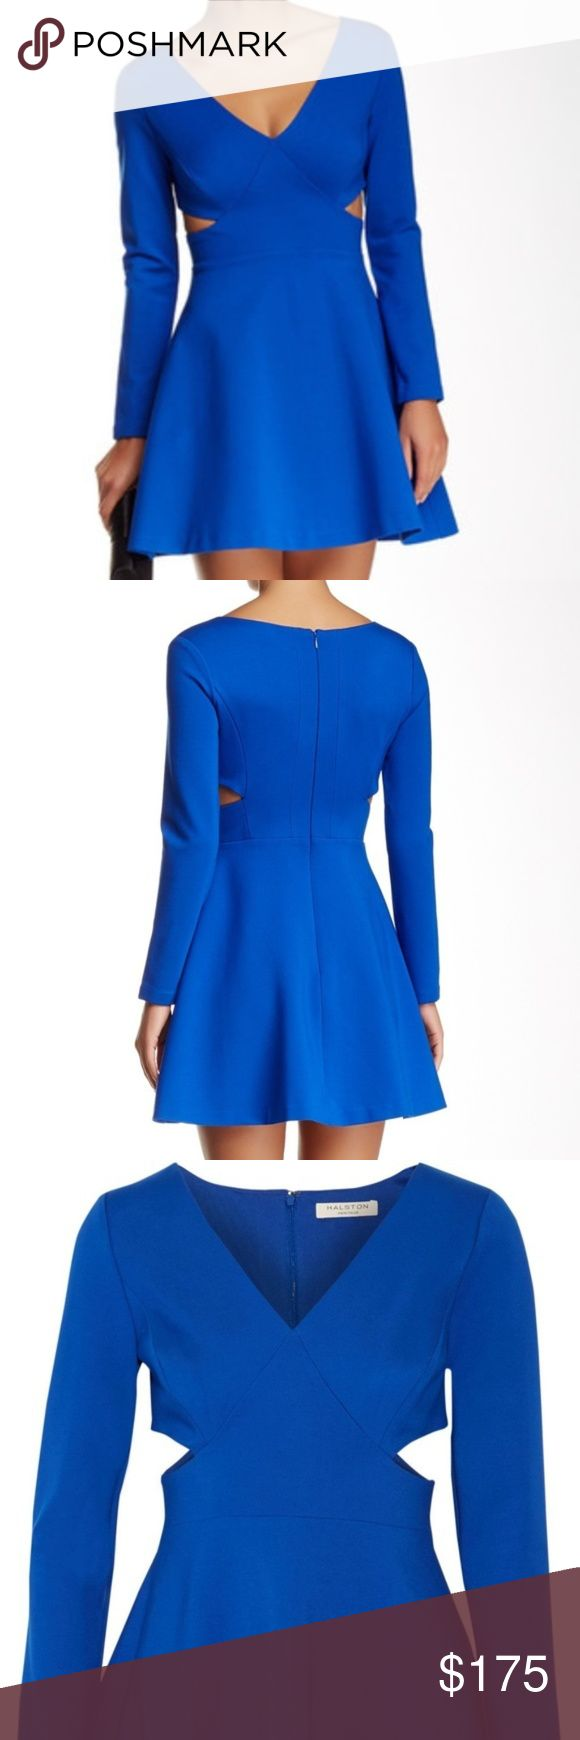 """Halston Heritage A-Line Side Cut Out Dress Halston Heritage bright cobalt royal blue deep v neck side cut out long sleeve structured a-line, fit and flare formal dress. worn once to a wedding. In excellent condition. Retails at $495. Model is 5'2, 140lbs. Dress has a LOT of stretch to it, but is thick and tucks everything in for a slimming overall effect. Length (from shoulder): 32"""", Width (armpit to armpit): 16"""". Feel free to make an offer! Halston Heritage Dresses"""